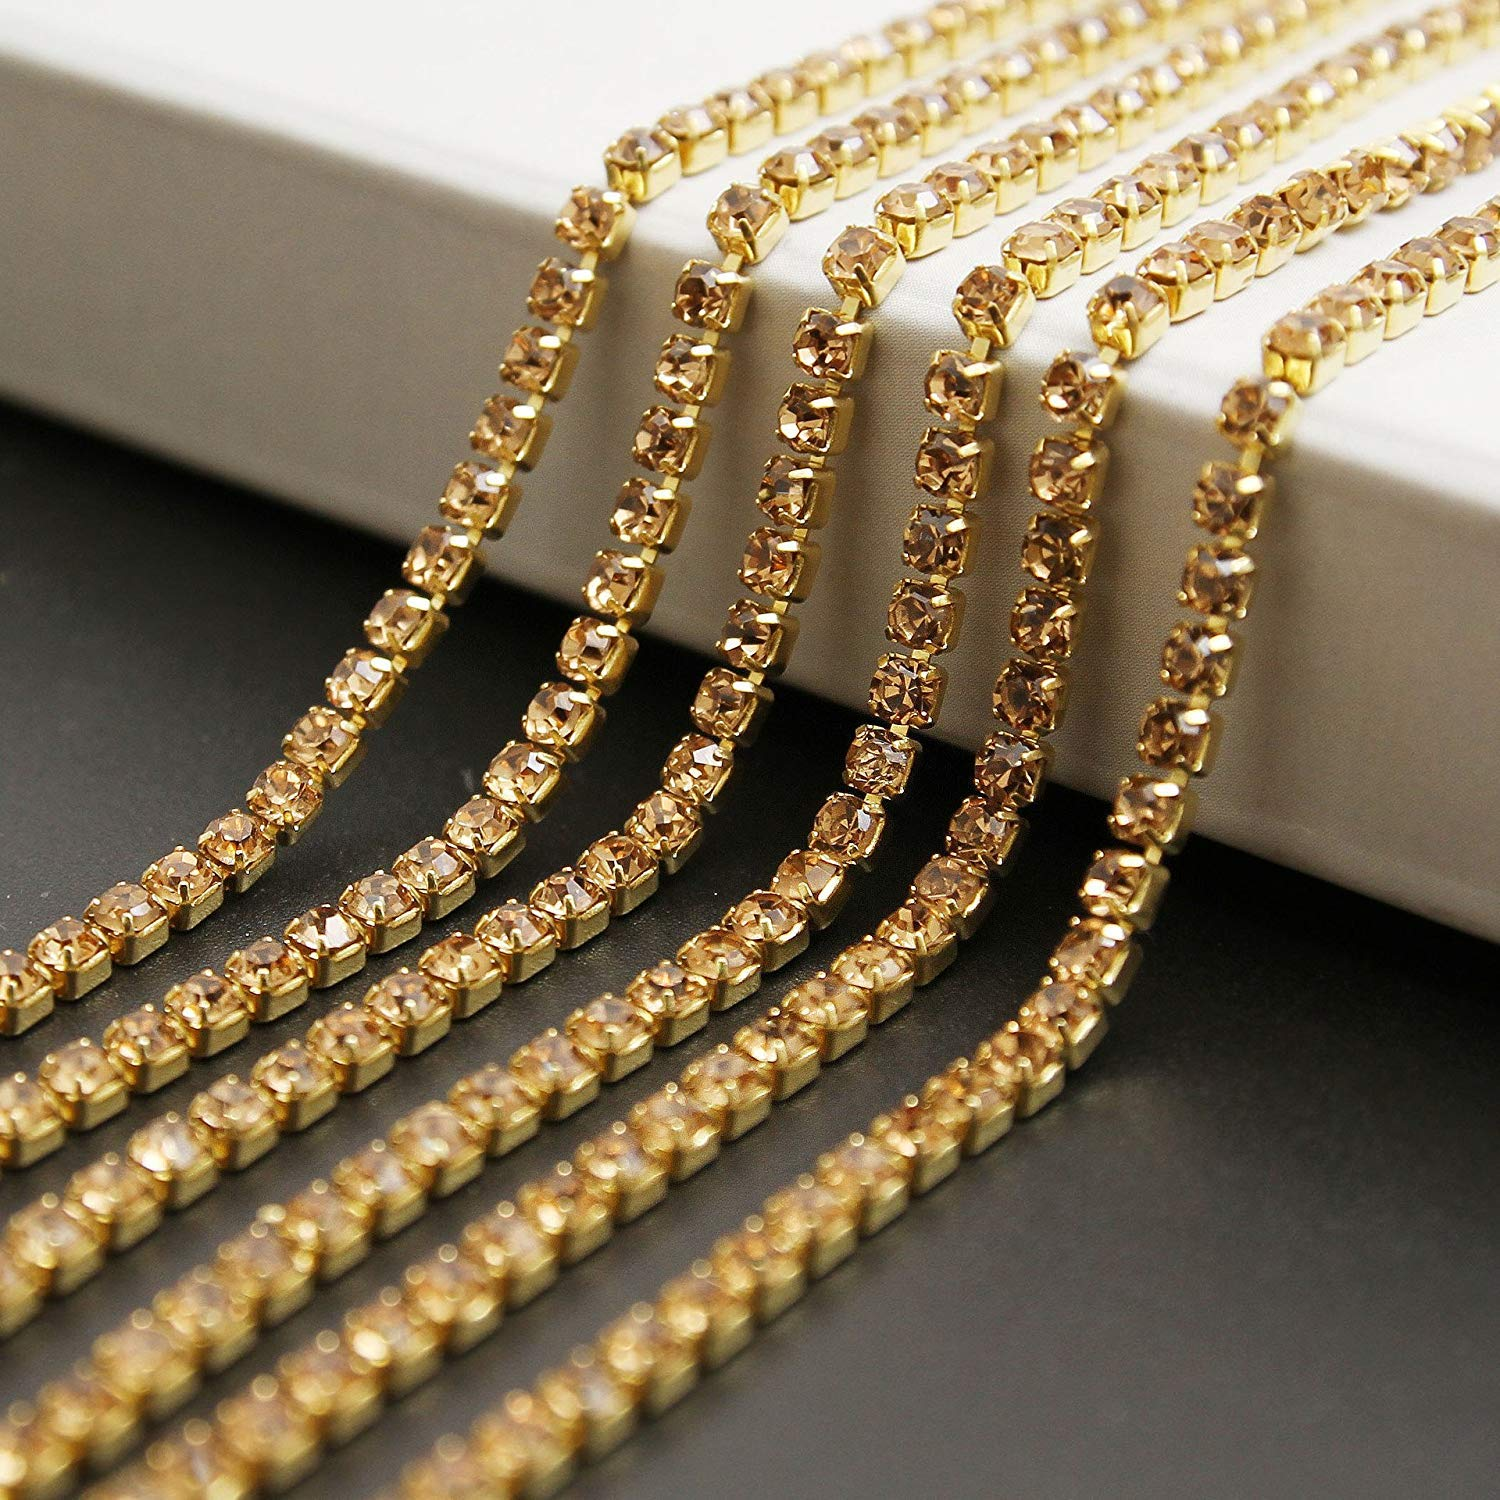 SS12//3.0MM Red-Gold Chain USIX 10 Yards Crystal Rhinestone Close Chain Trimming Claw Chain Multi Size Color Rhinestone Chain for DIY Arts Craft Sewing Jewelry Making